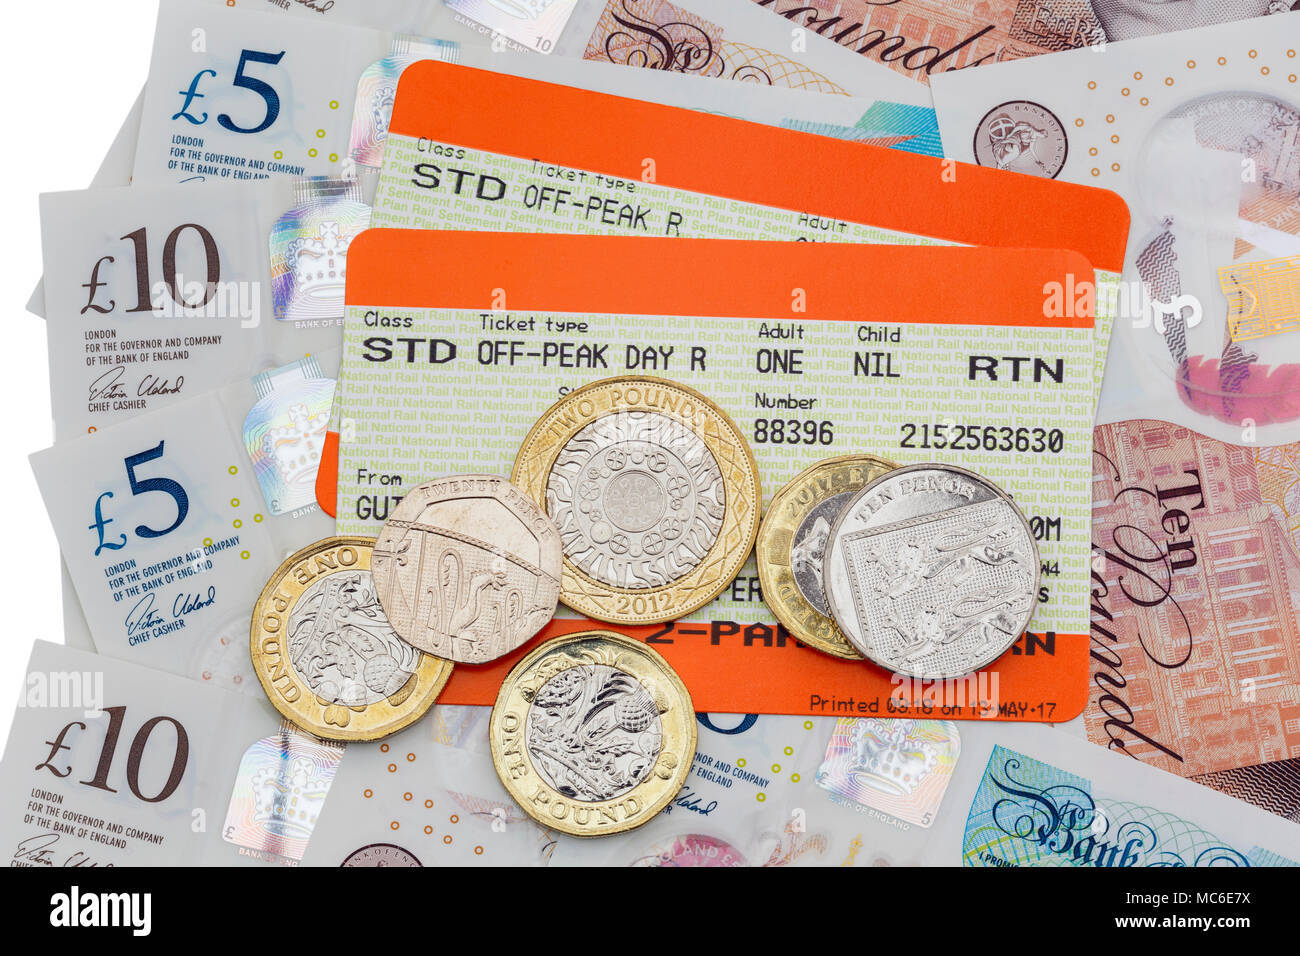 Two British train tickets for Standard off-peak travel out and return rail fares with five and ten pound notes and new pound coins. England UK Britain Stock Photo